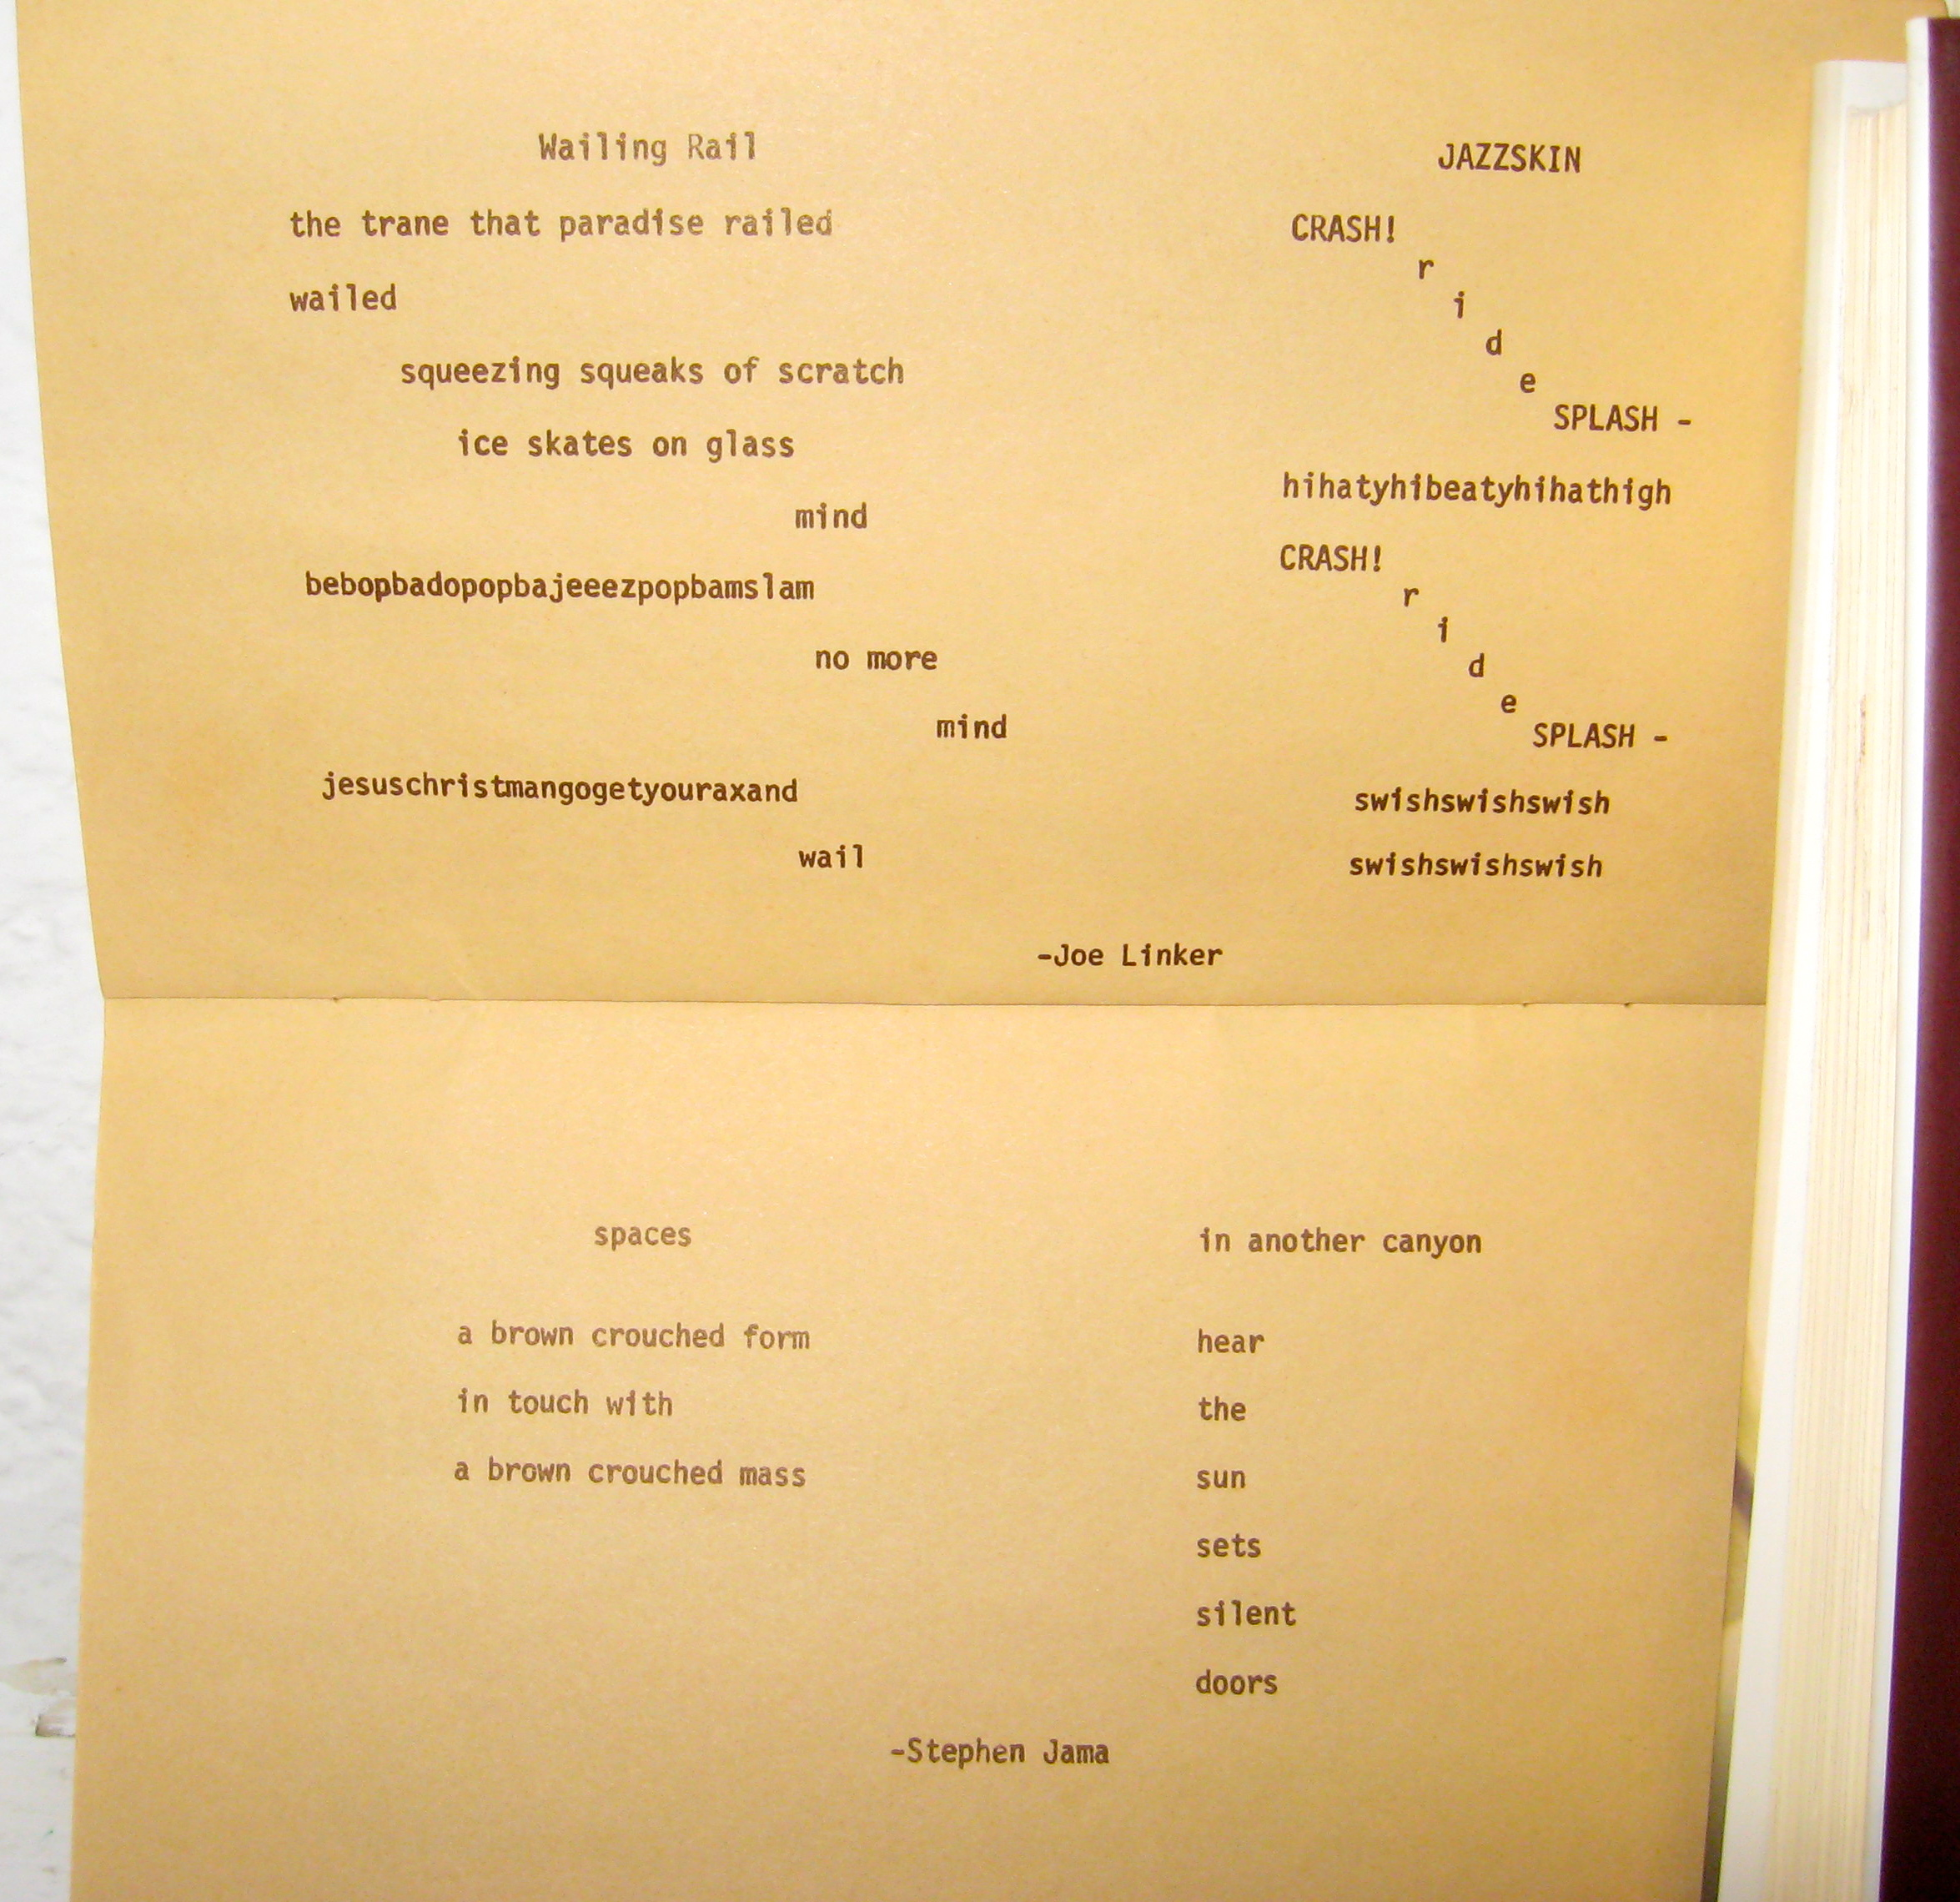 Concrete Poems About Softball Four poems from silent quicksand # 3